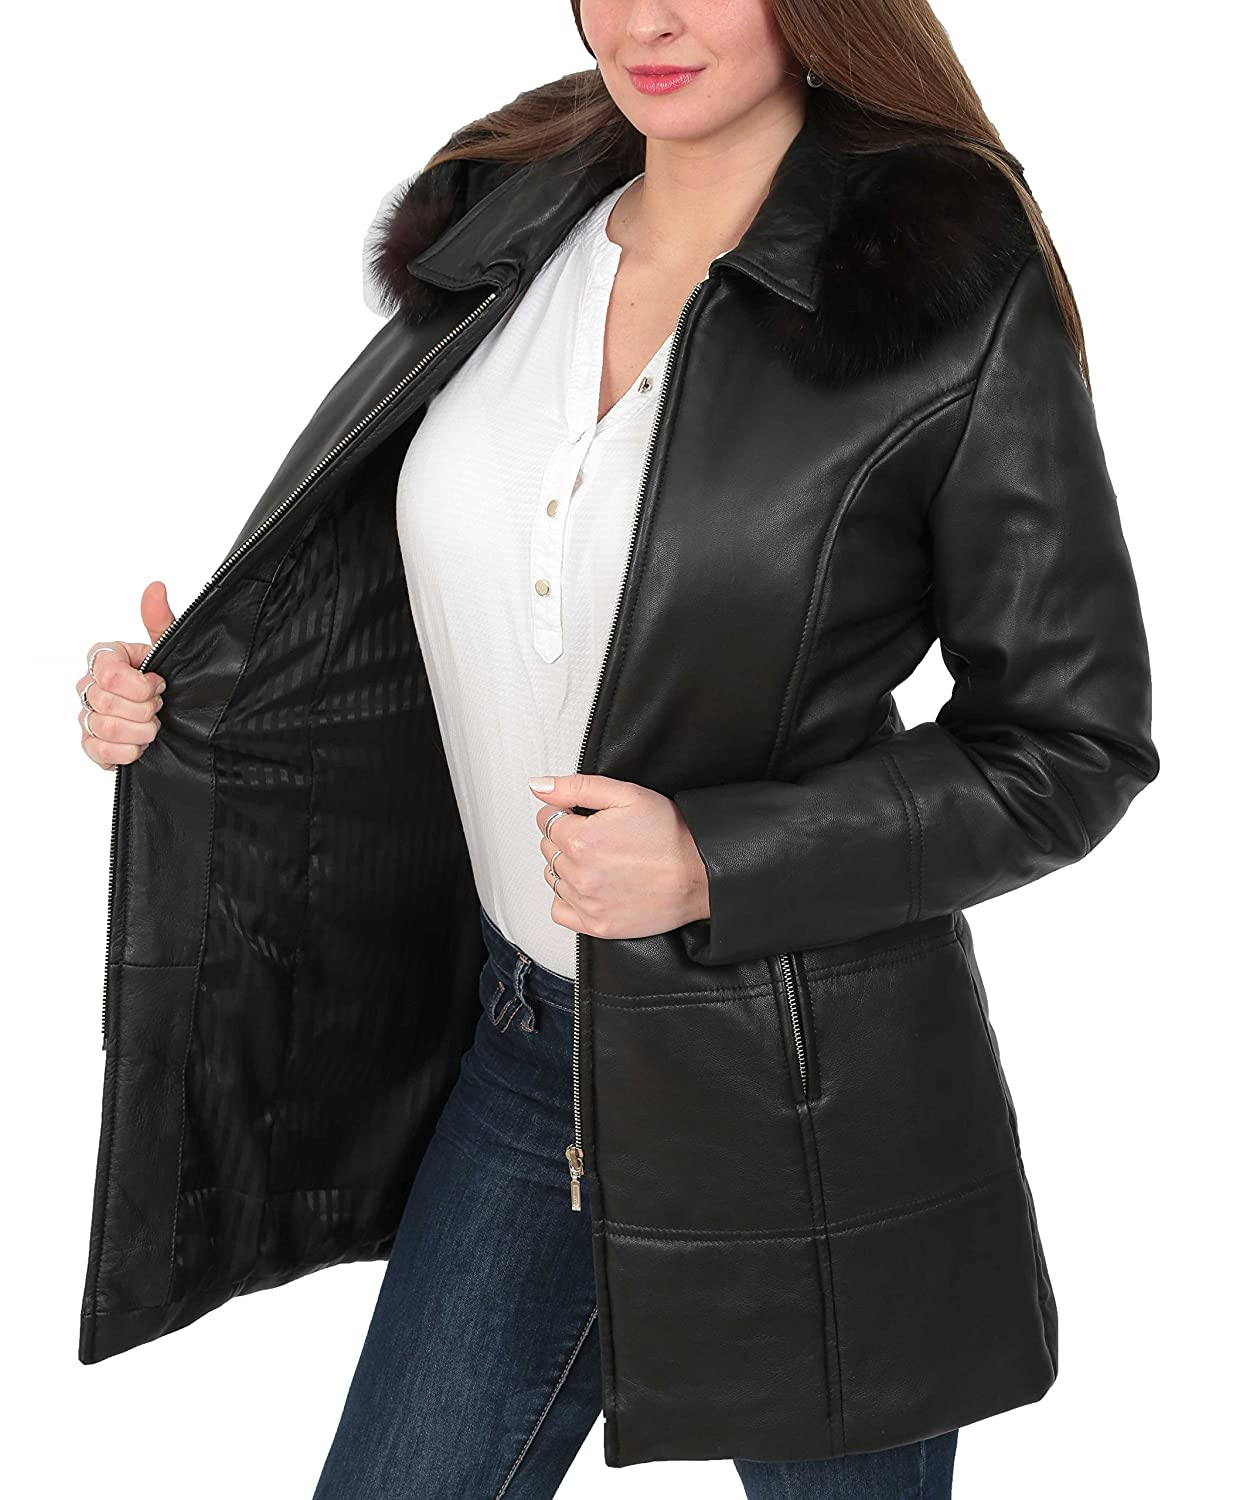 Ladies Soft Leather Puffer Coat 3/4 Length Padded Fitted Hooded Parka Lisa Black at Amazon Womens Coats Shop